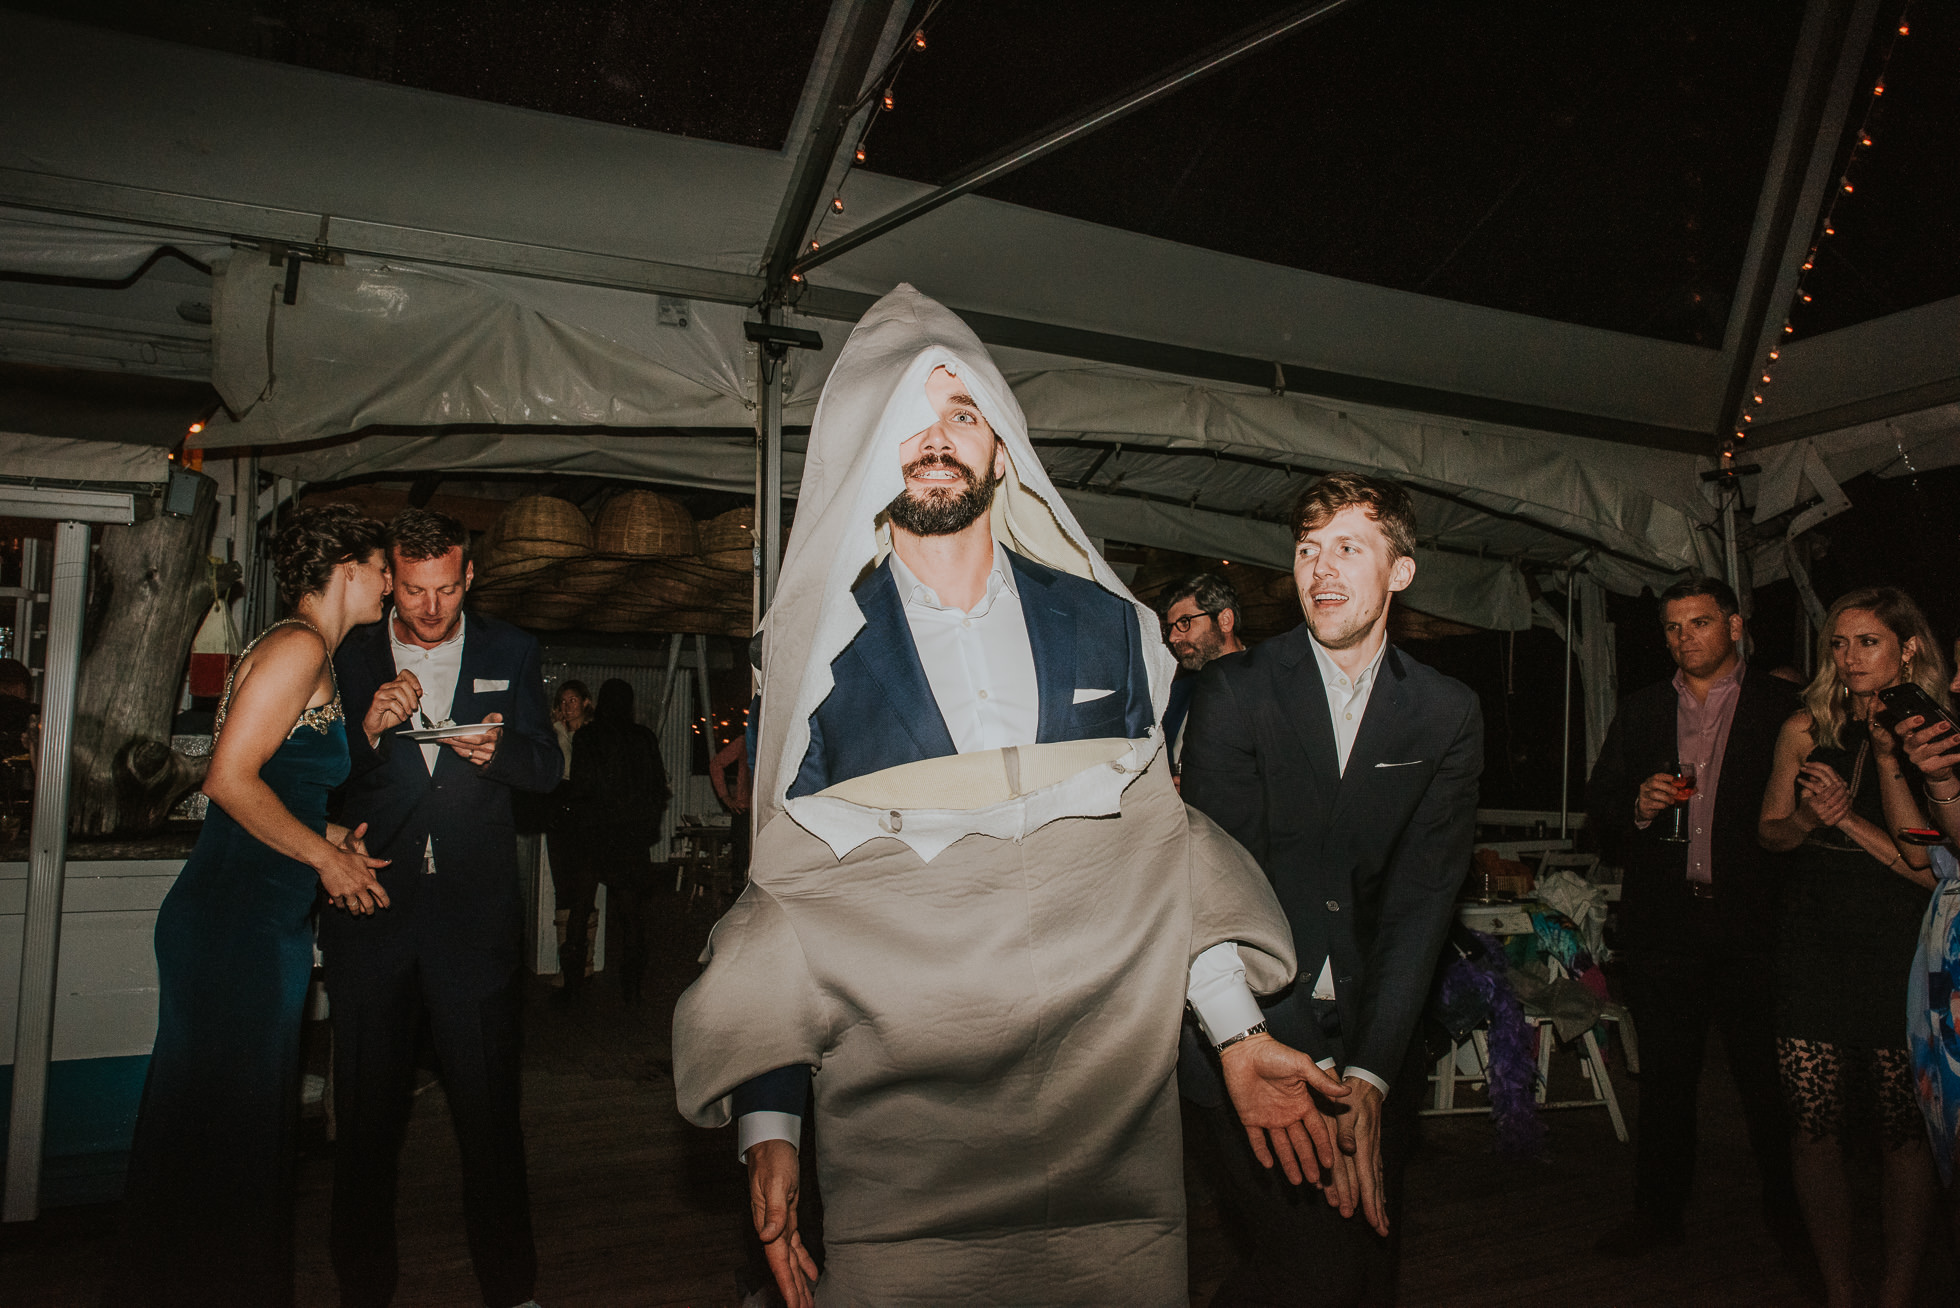 shark costume at reception Montauk wedding photographed by Traverse the Tides